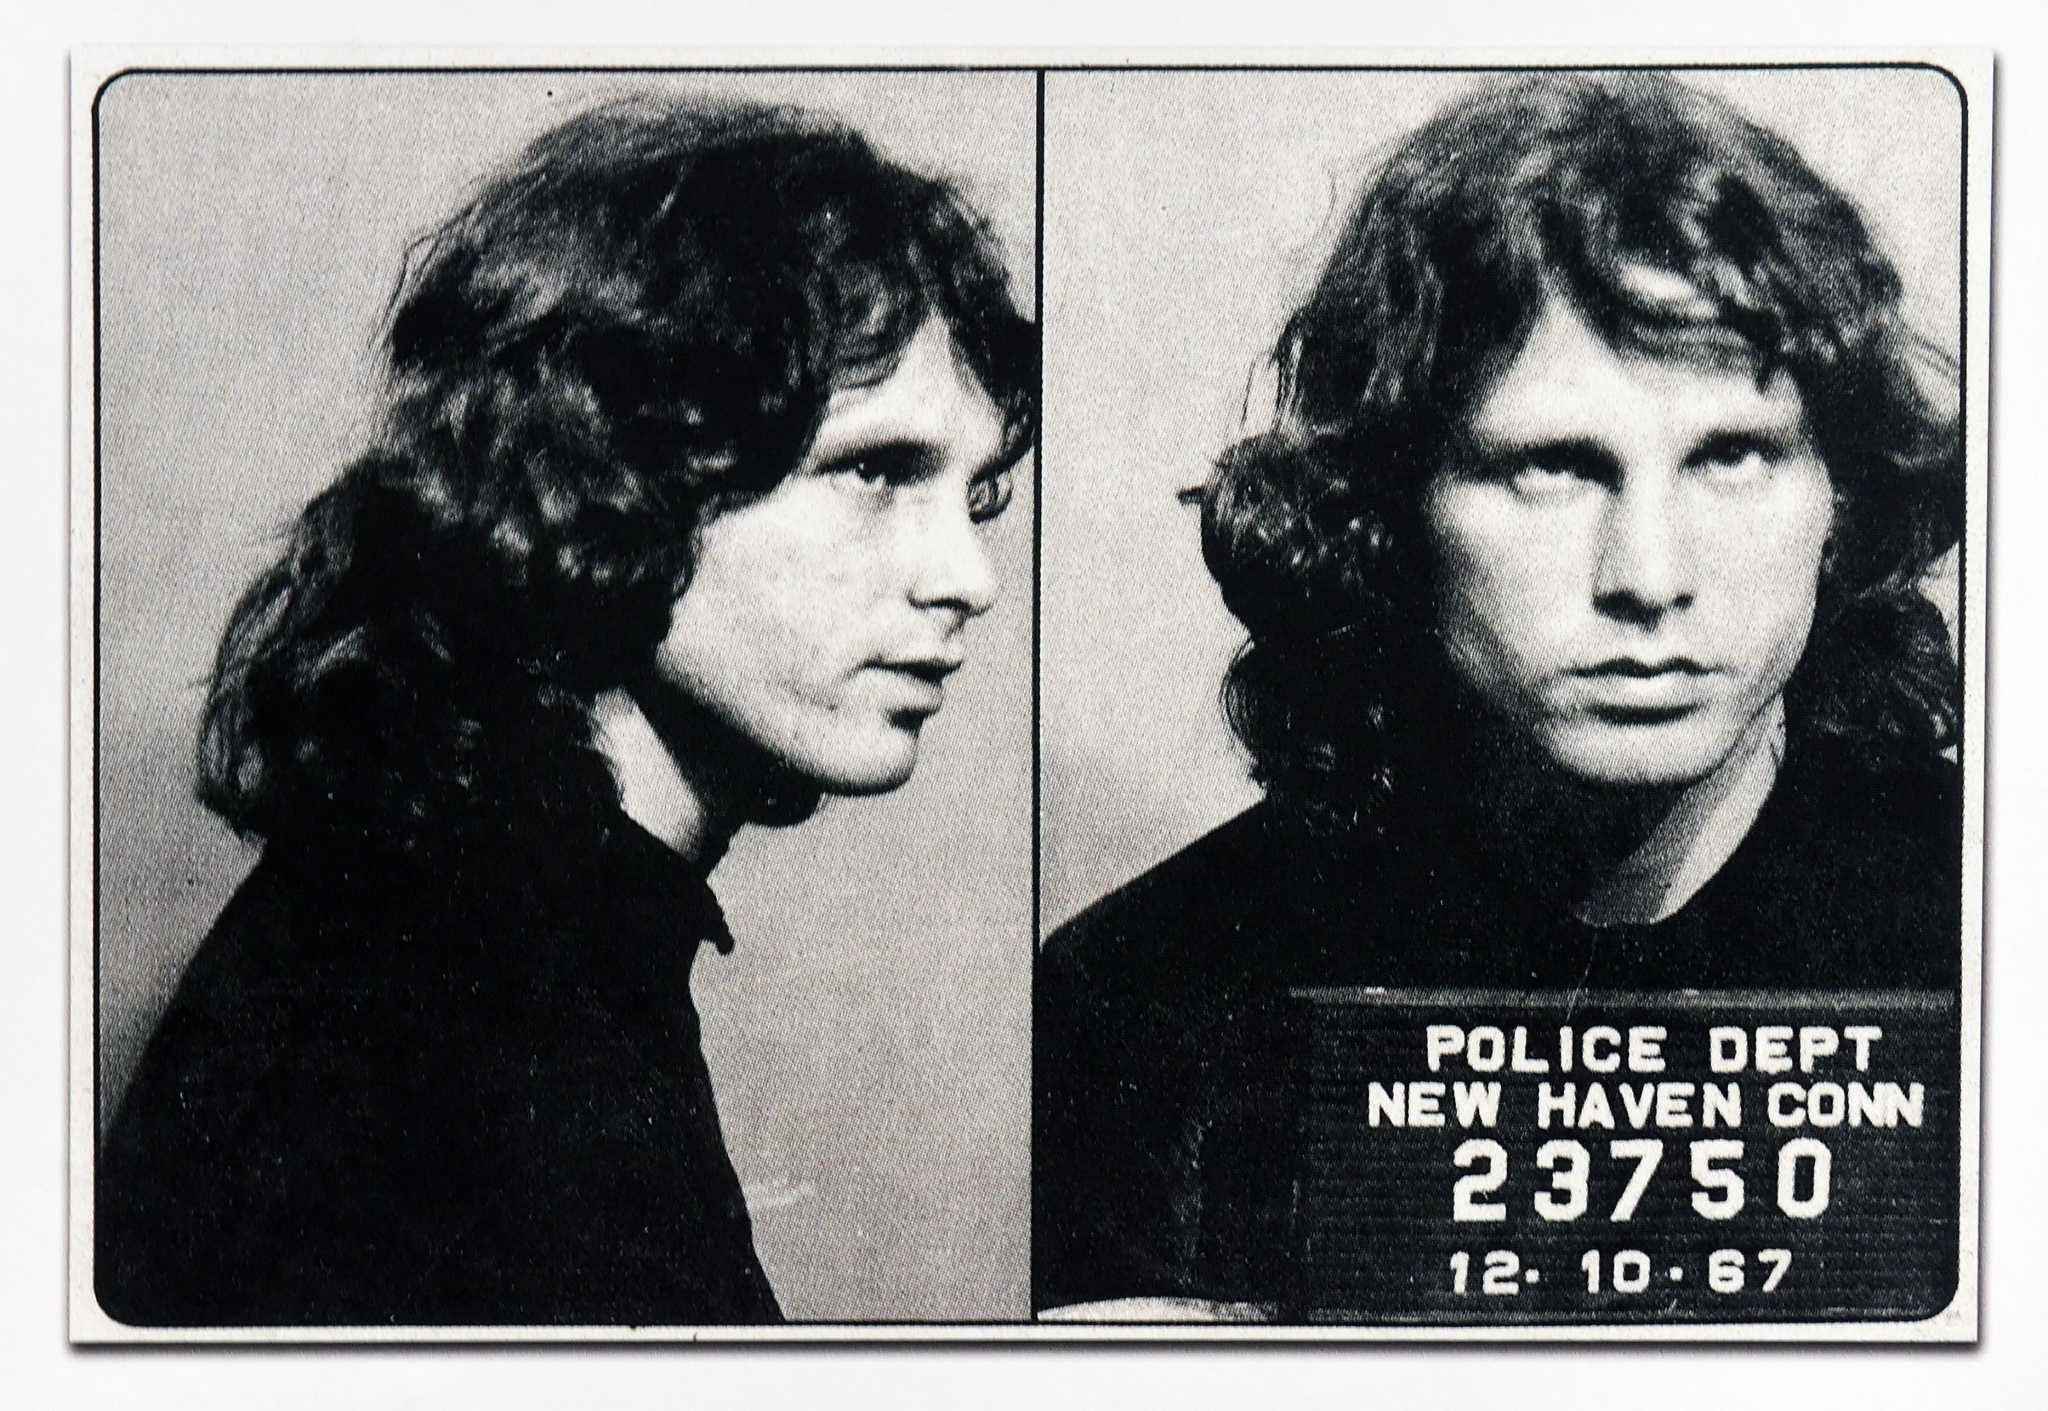 Rocker Jim Morrison arrested this day in New Haven